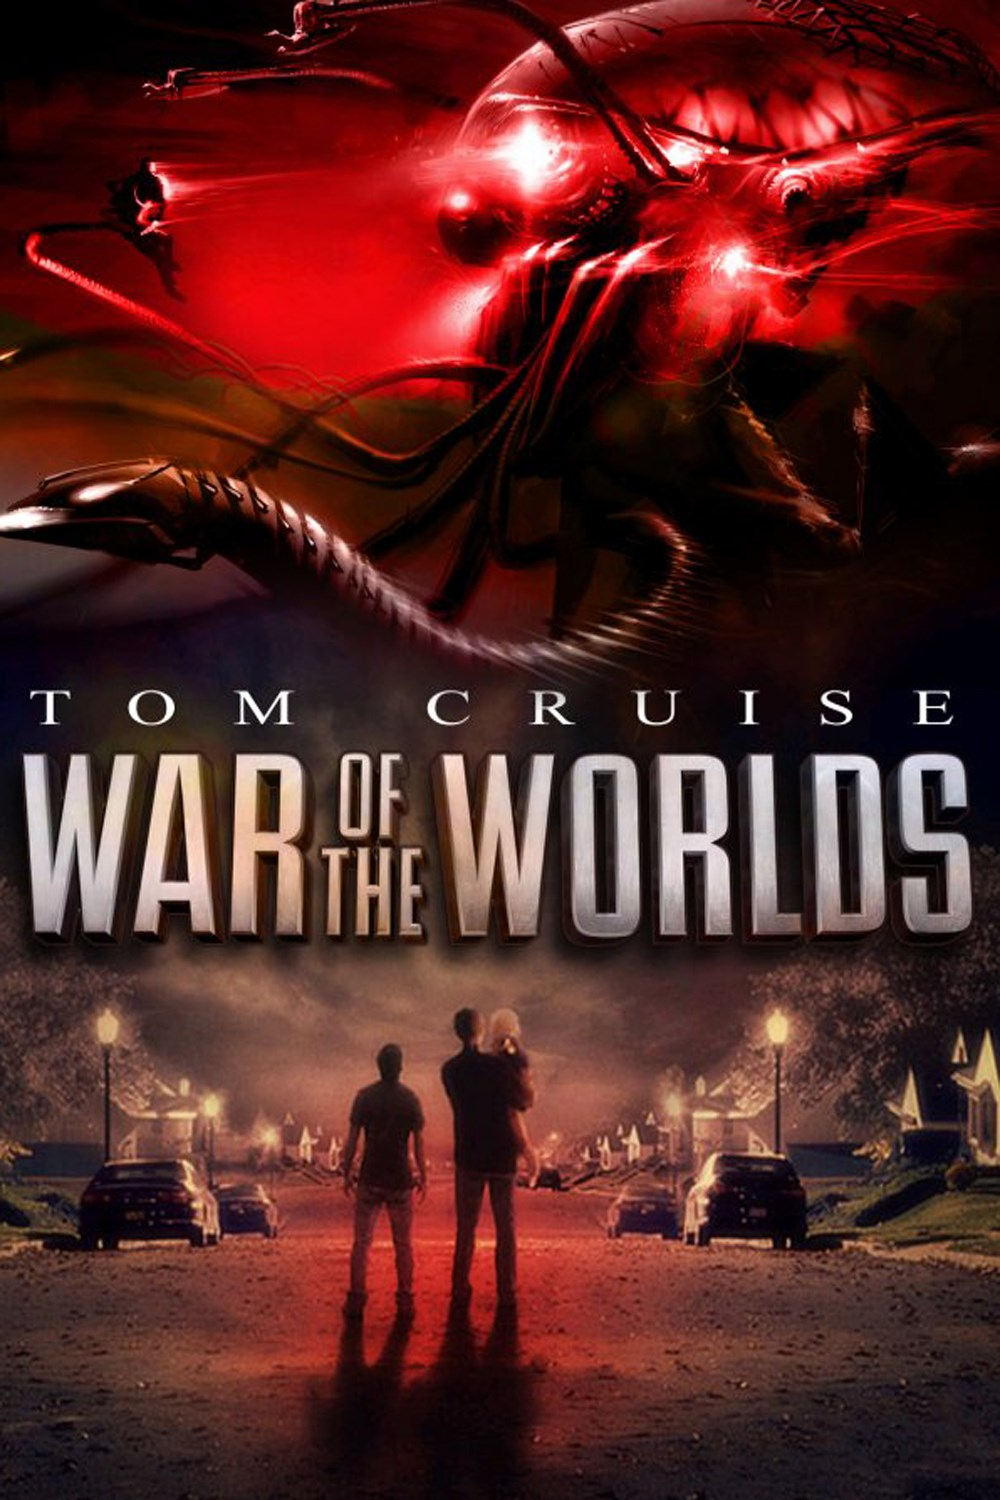 war of the worlds rele...